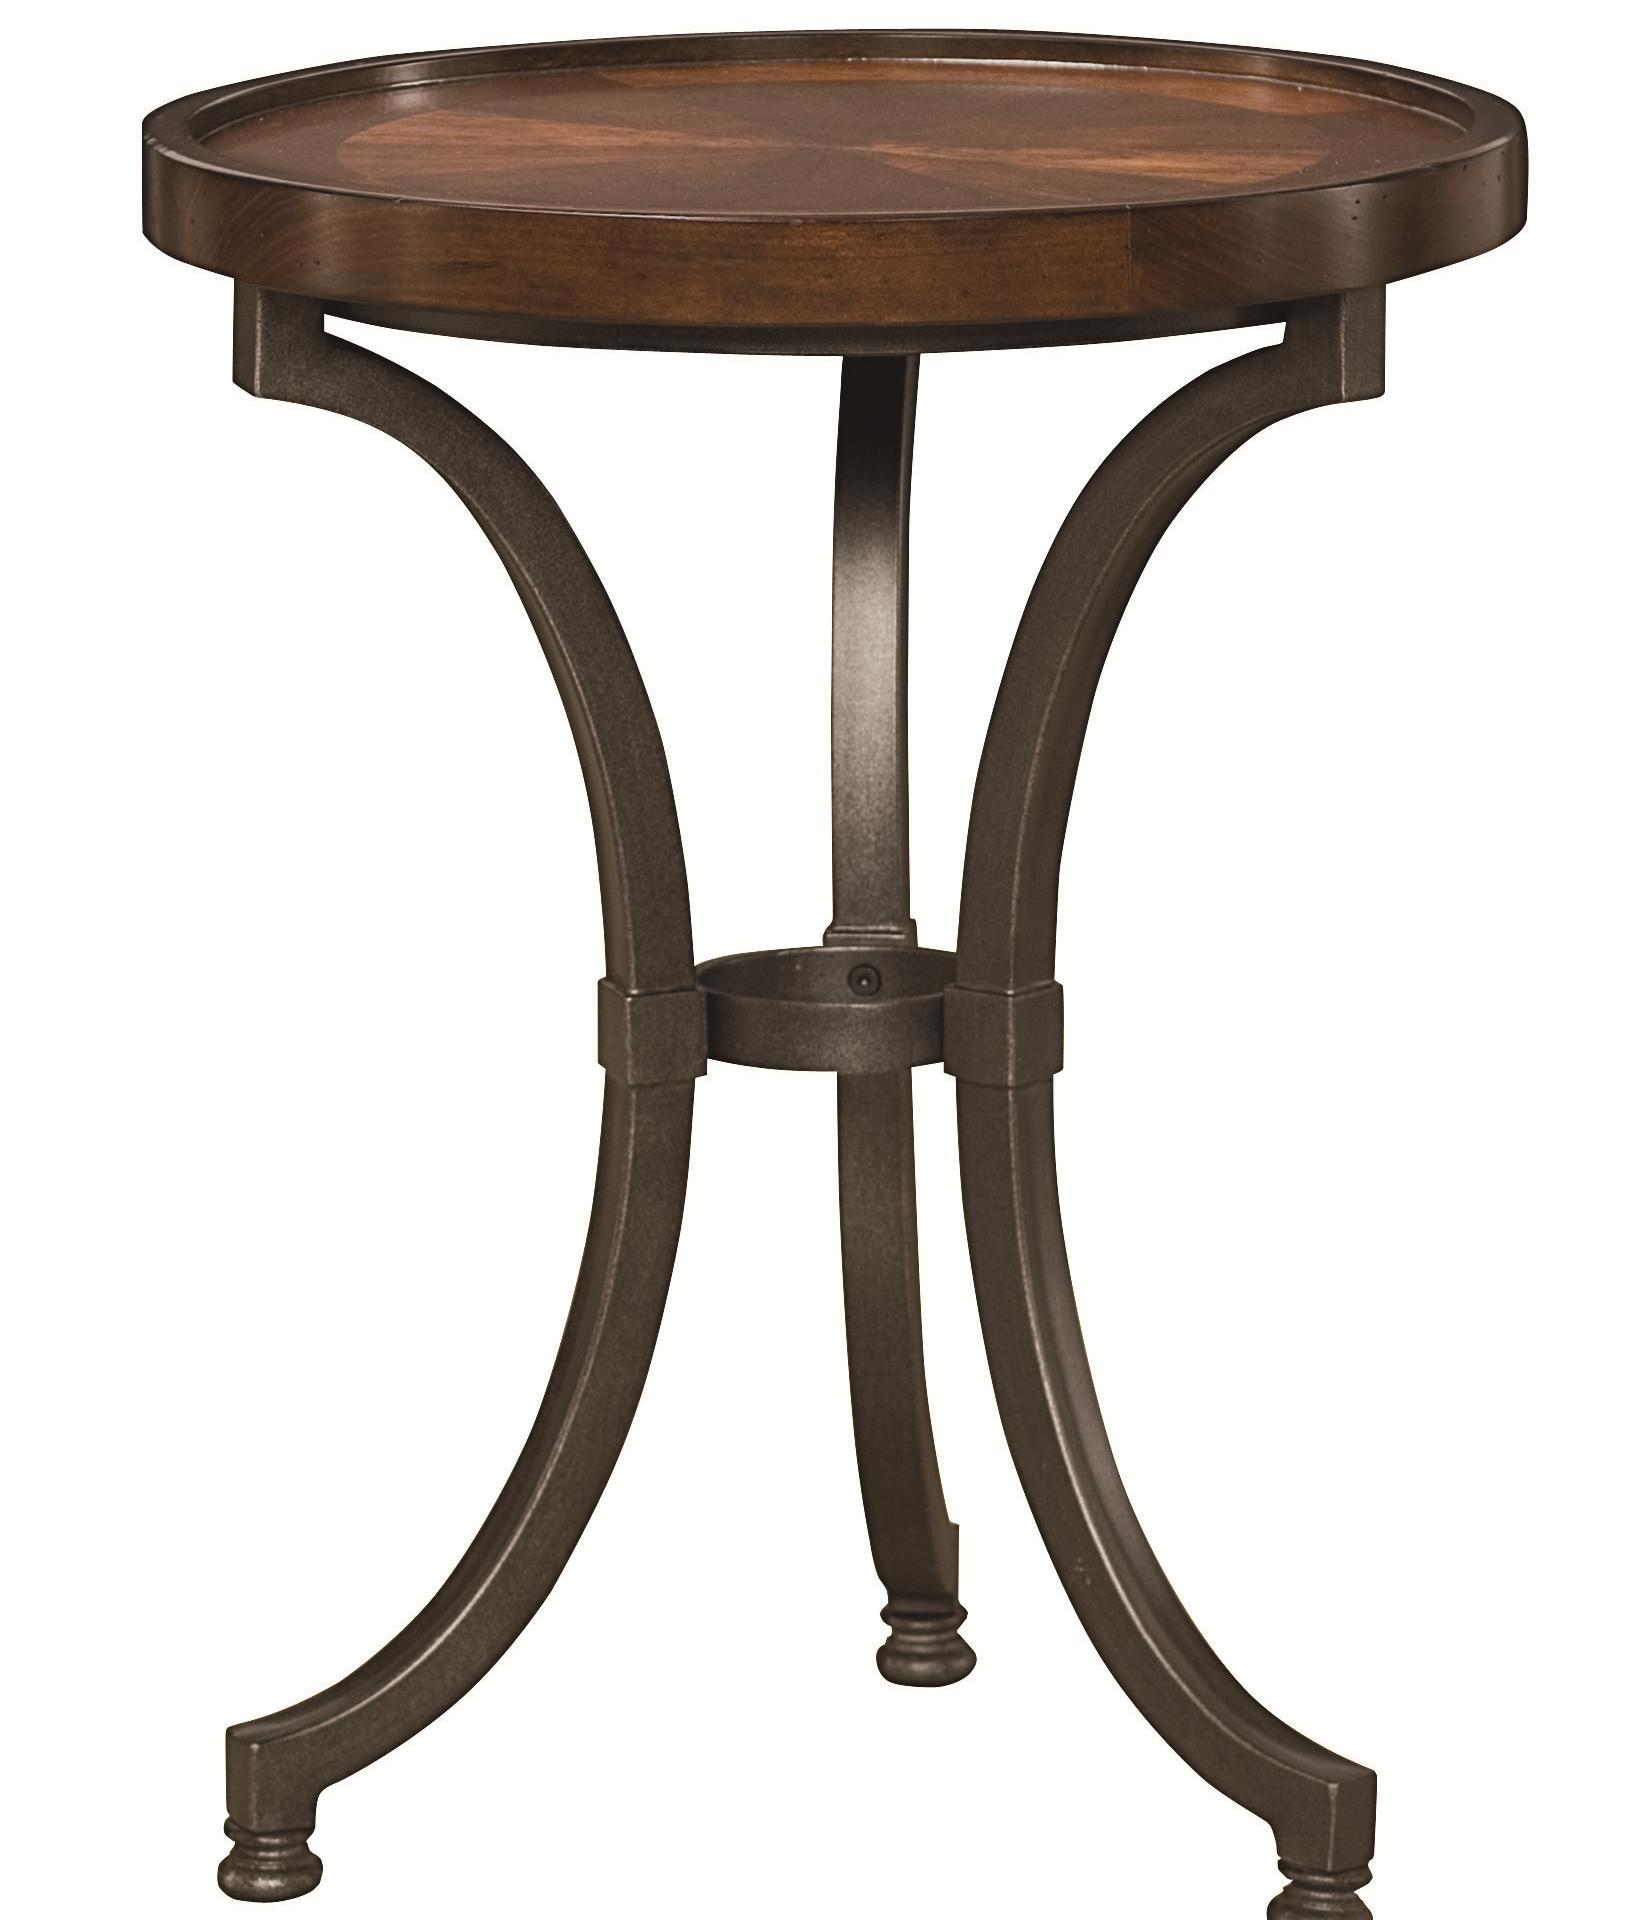 Hammary Barrow Round Chairside Table With Metal Base